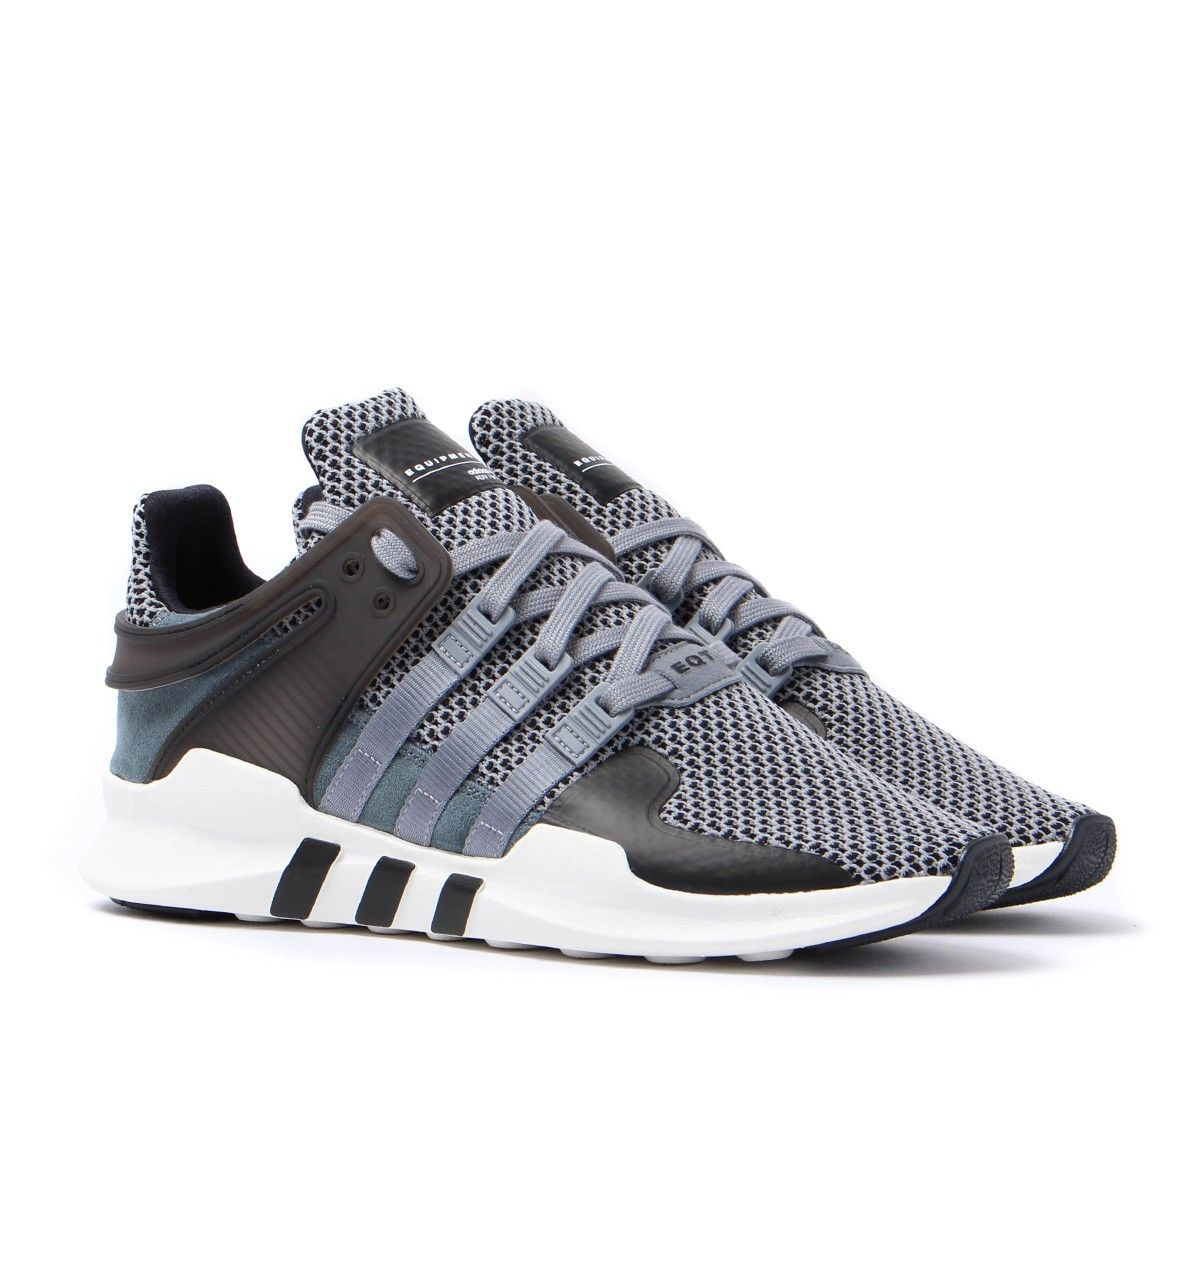 Adidas Orignals Equipment Support ADV Grey Mesh Trainers